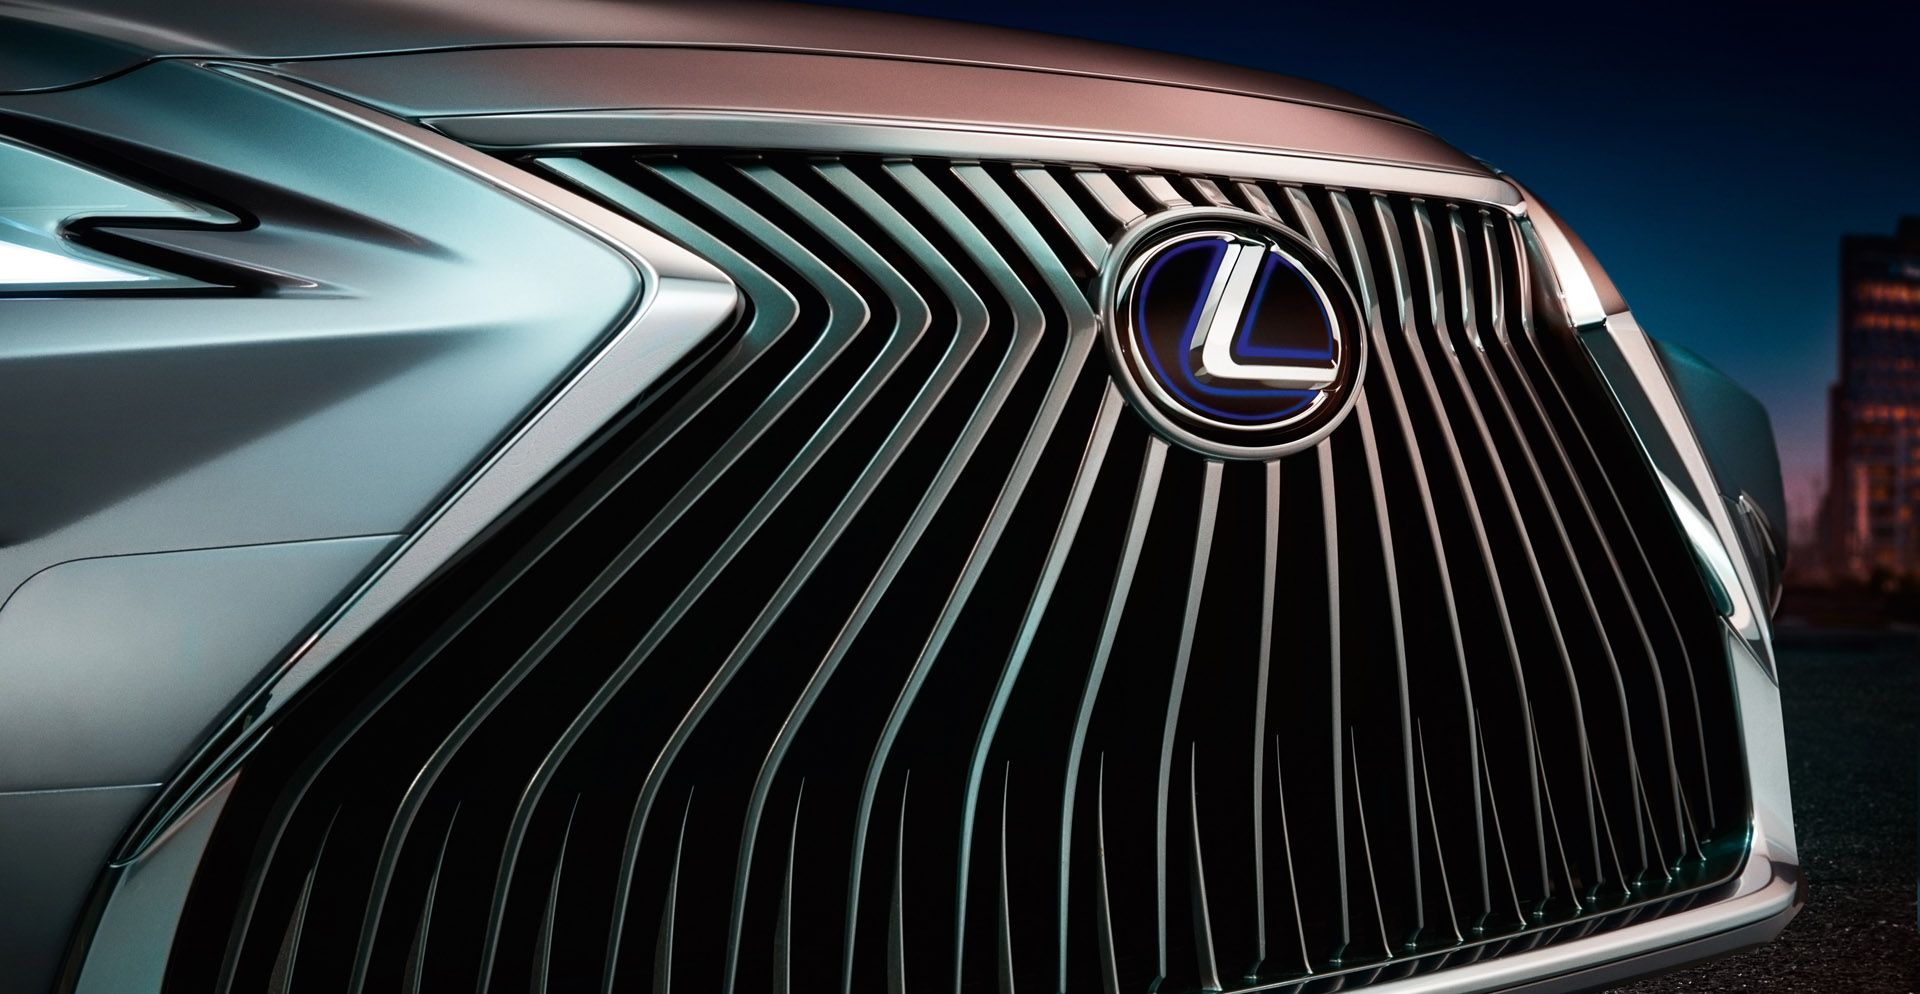 Lexus ES grille revealed in official image